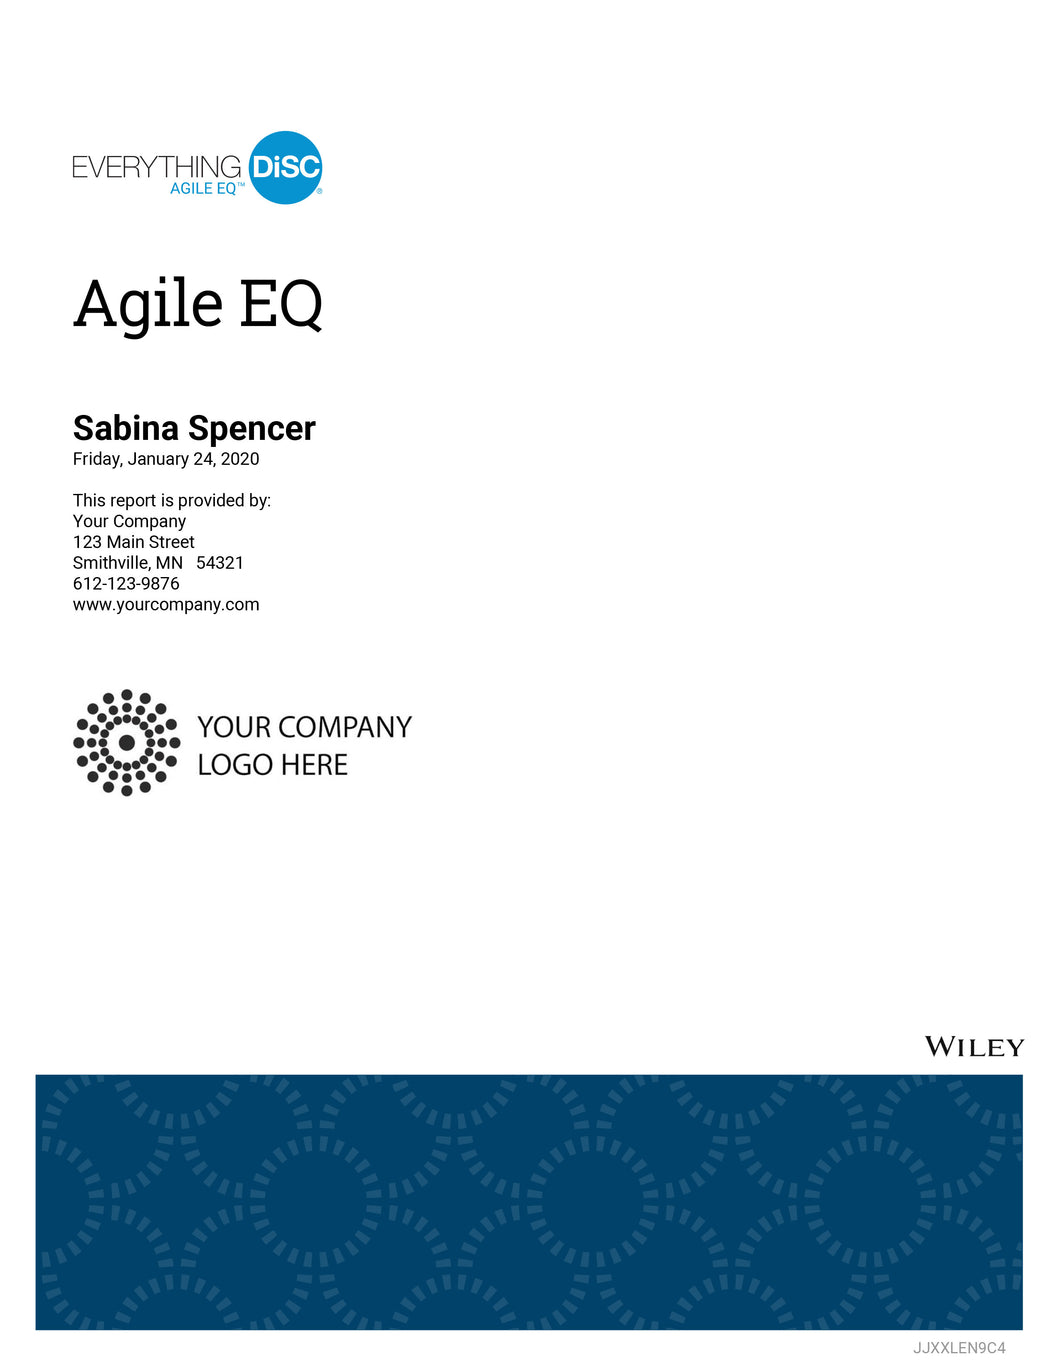 Everything DiSC® Agile EQ Profile